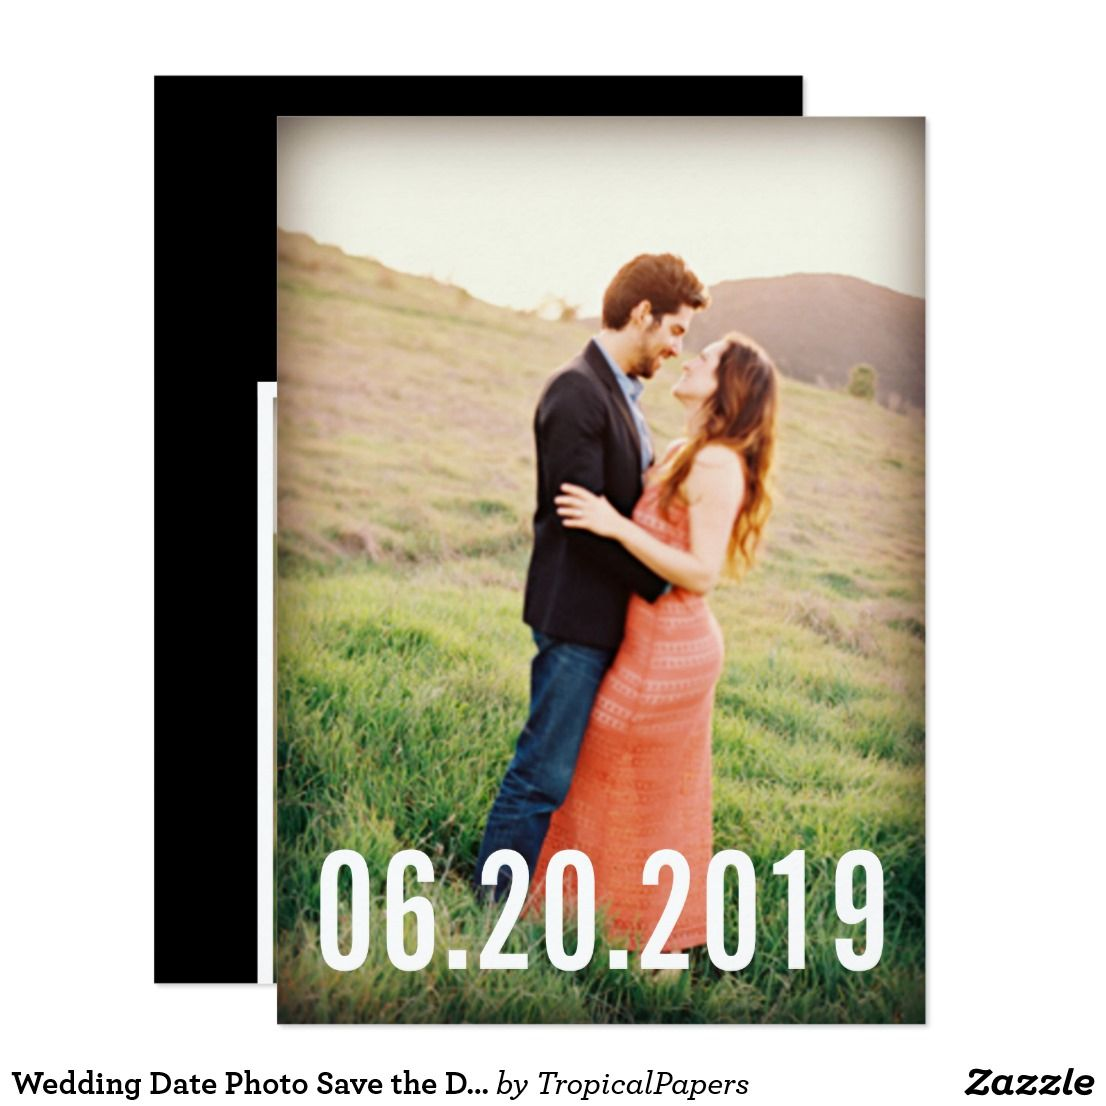 Night before wedding decorations january 2019 Wedding Date Photo Save the Dates Card  Favours and Wedding